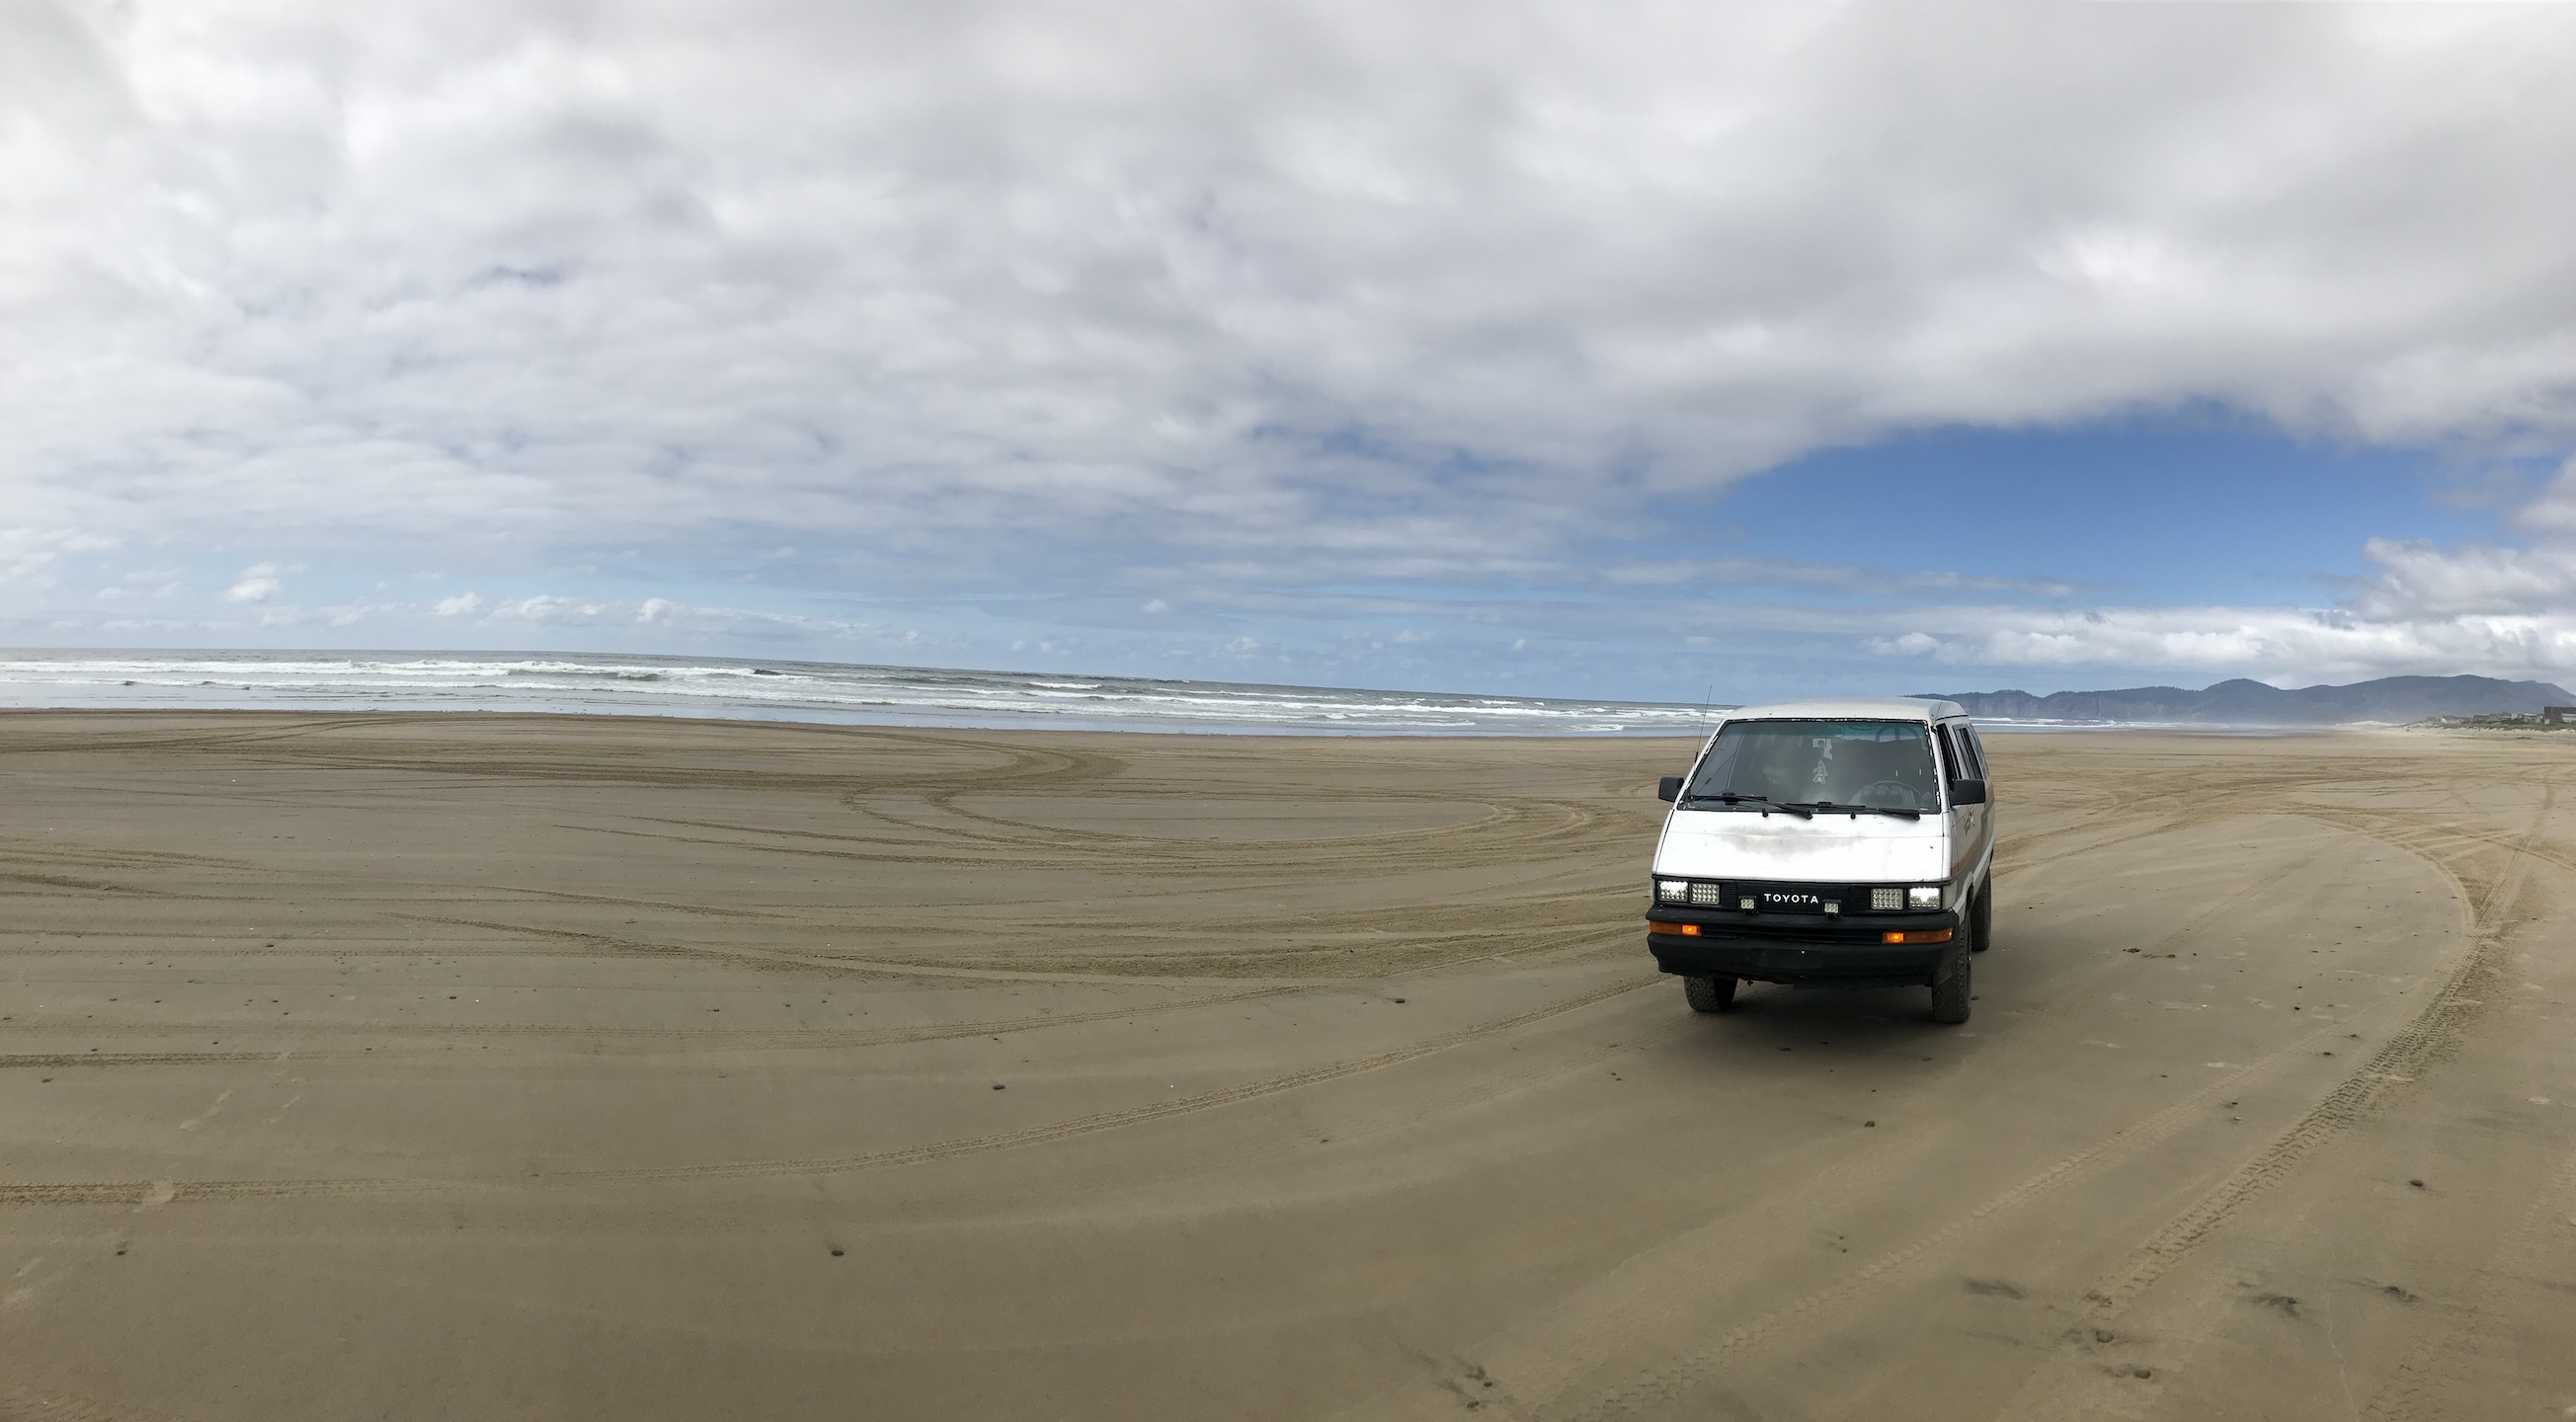 Driving on the beach in Oregon